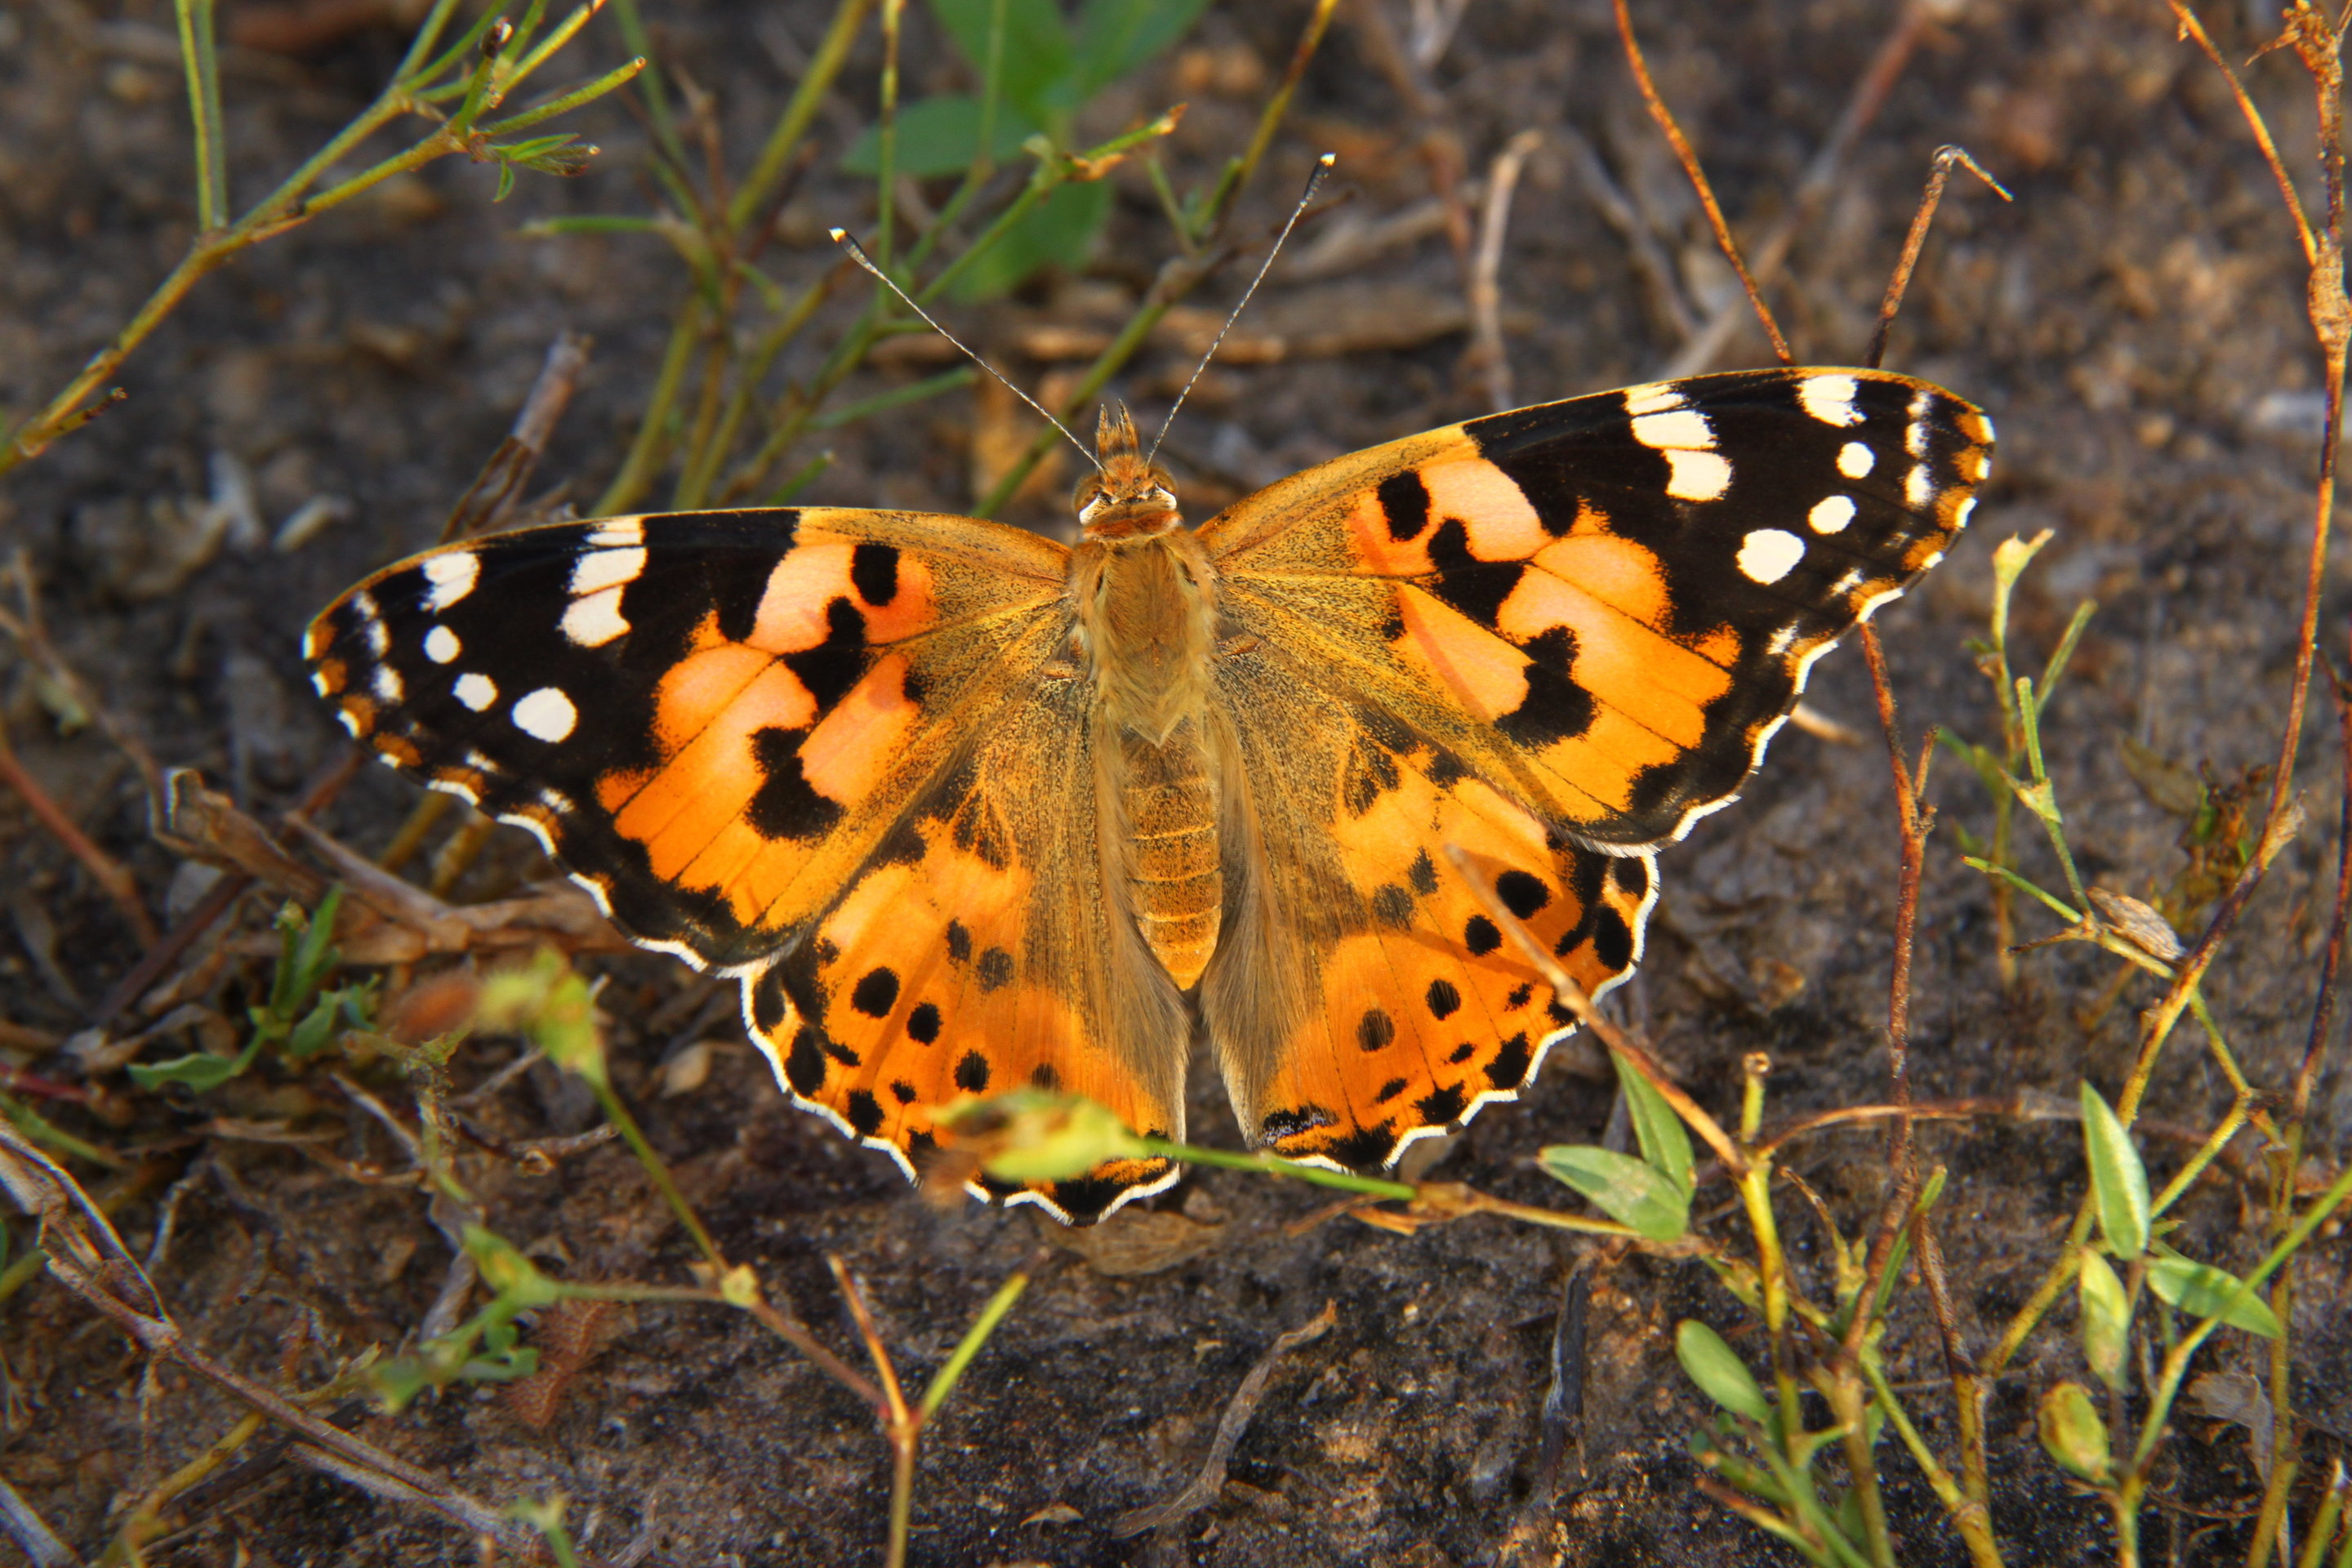 photo image Painted lady's roundtrip migratory flight is the longest recorded in butterflies